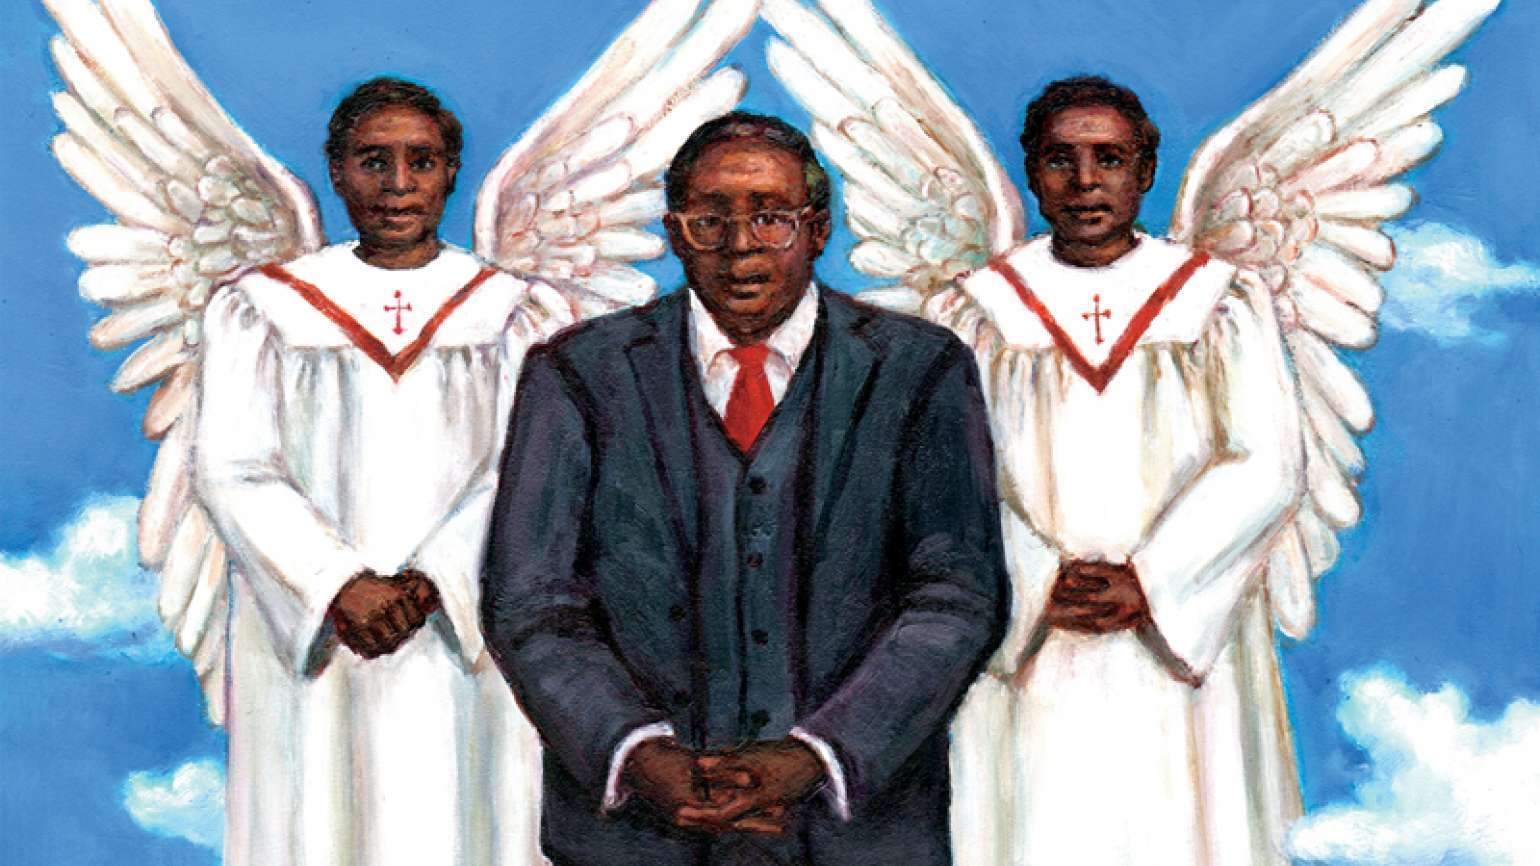 An artist's rendering of Janis' father accompanied by a pair of winged angels